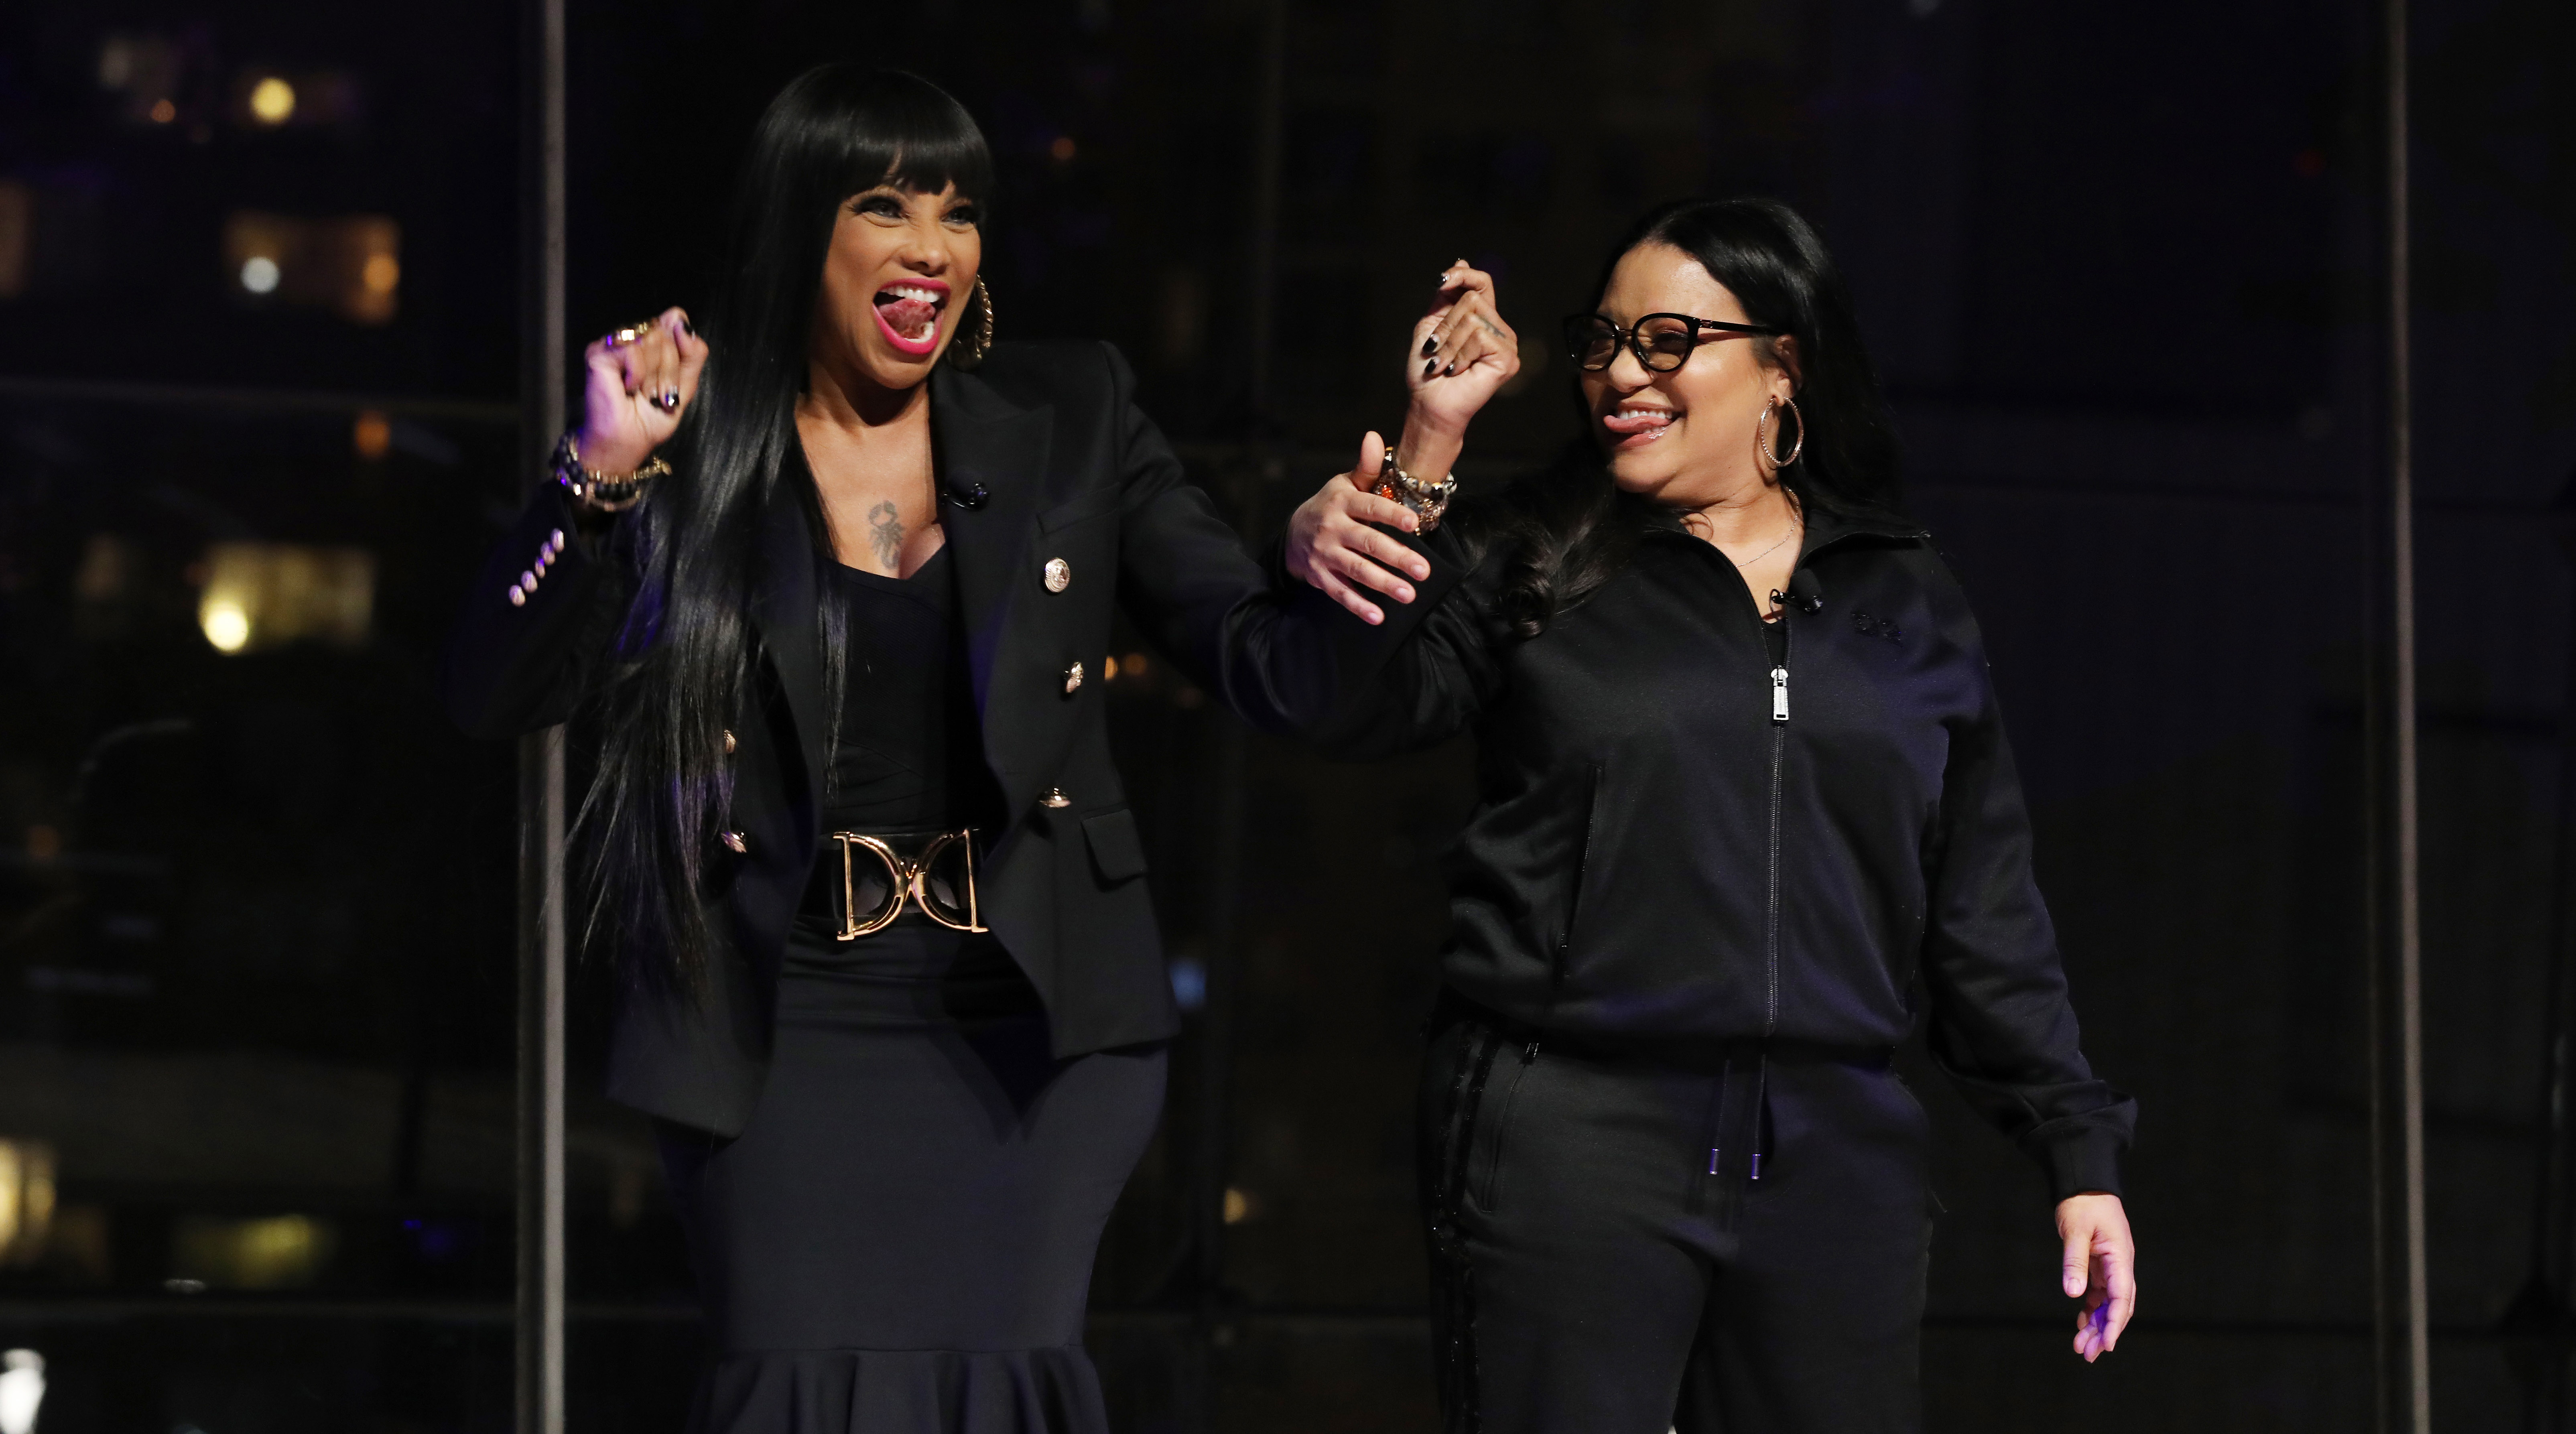 Sandra Denton and Cheryl James of Salt-N-Pepa speak onstage during the 2019 A+E Networks Upfront at Jazz at Lincoln Center on March 27, 2019 in New York City. [Photo by Cindy Ord/Getty Images for A+E Networks]